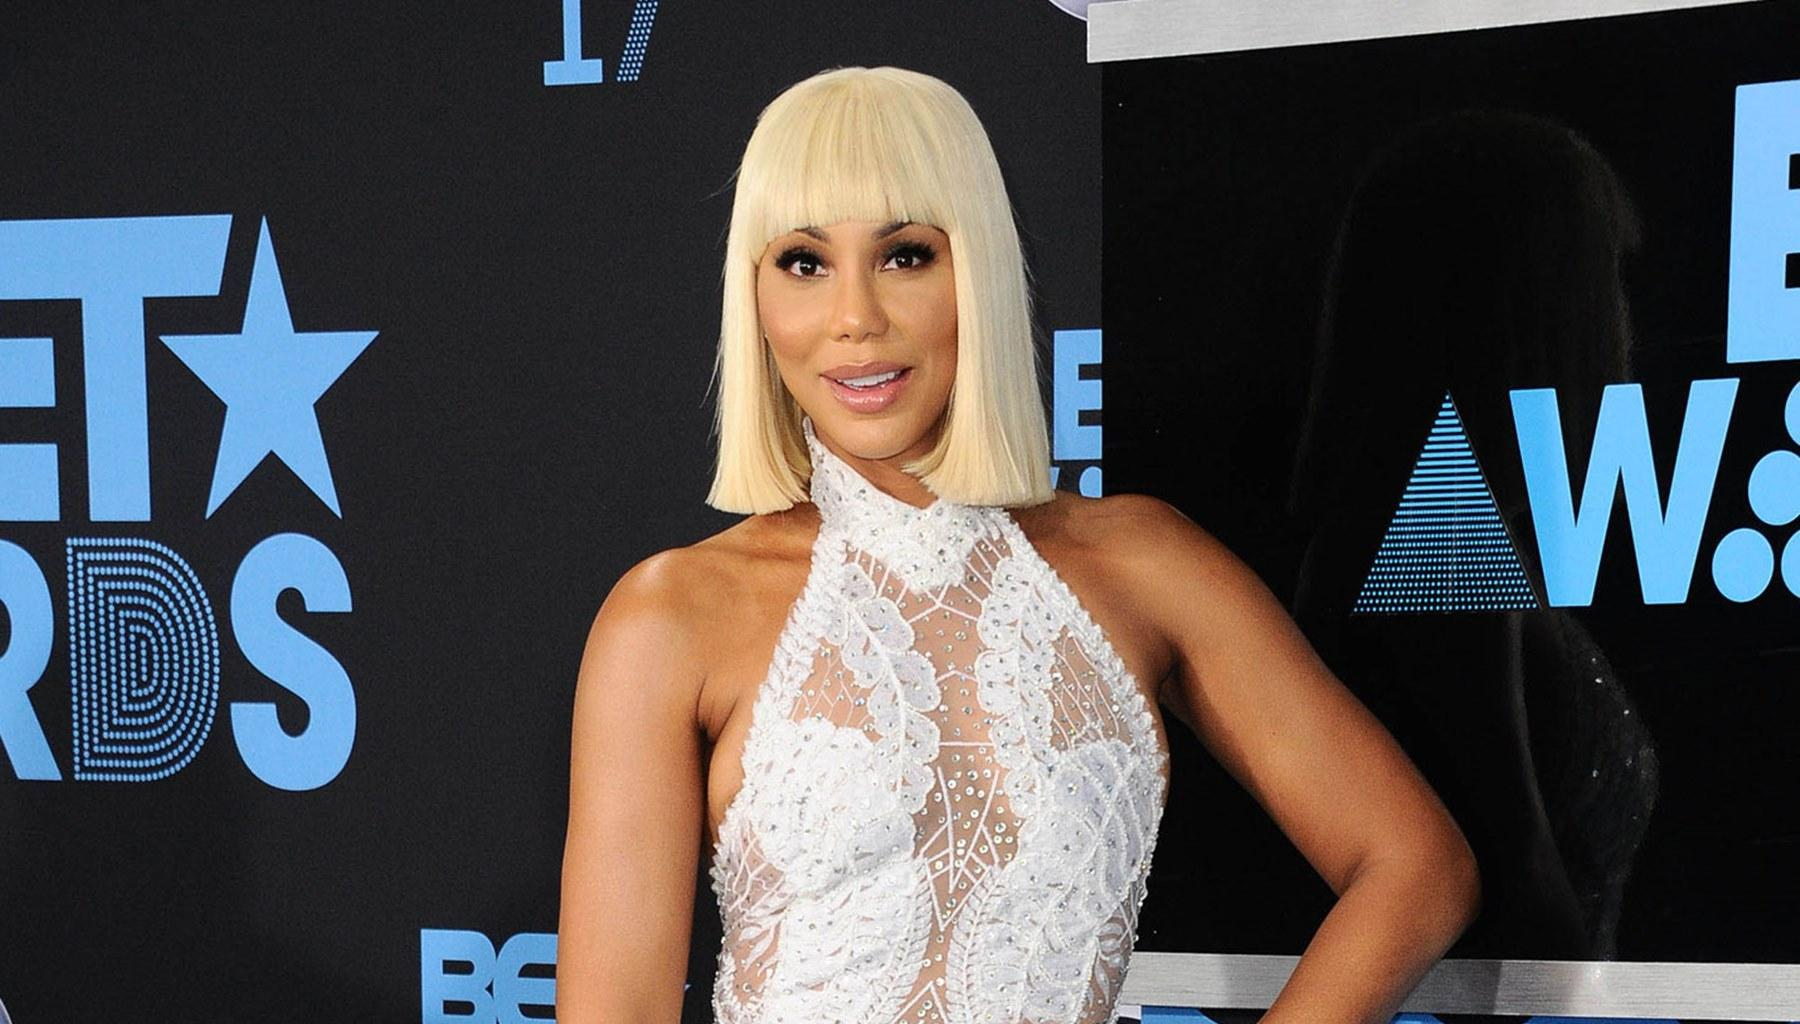 Tamar Braxton Shows Off Her Inches In New Photo, And Some Fans Are Confused -- David Adefeso's Girlfriend Sets Her Own Rules